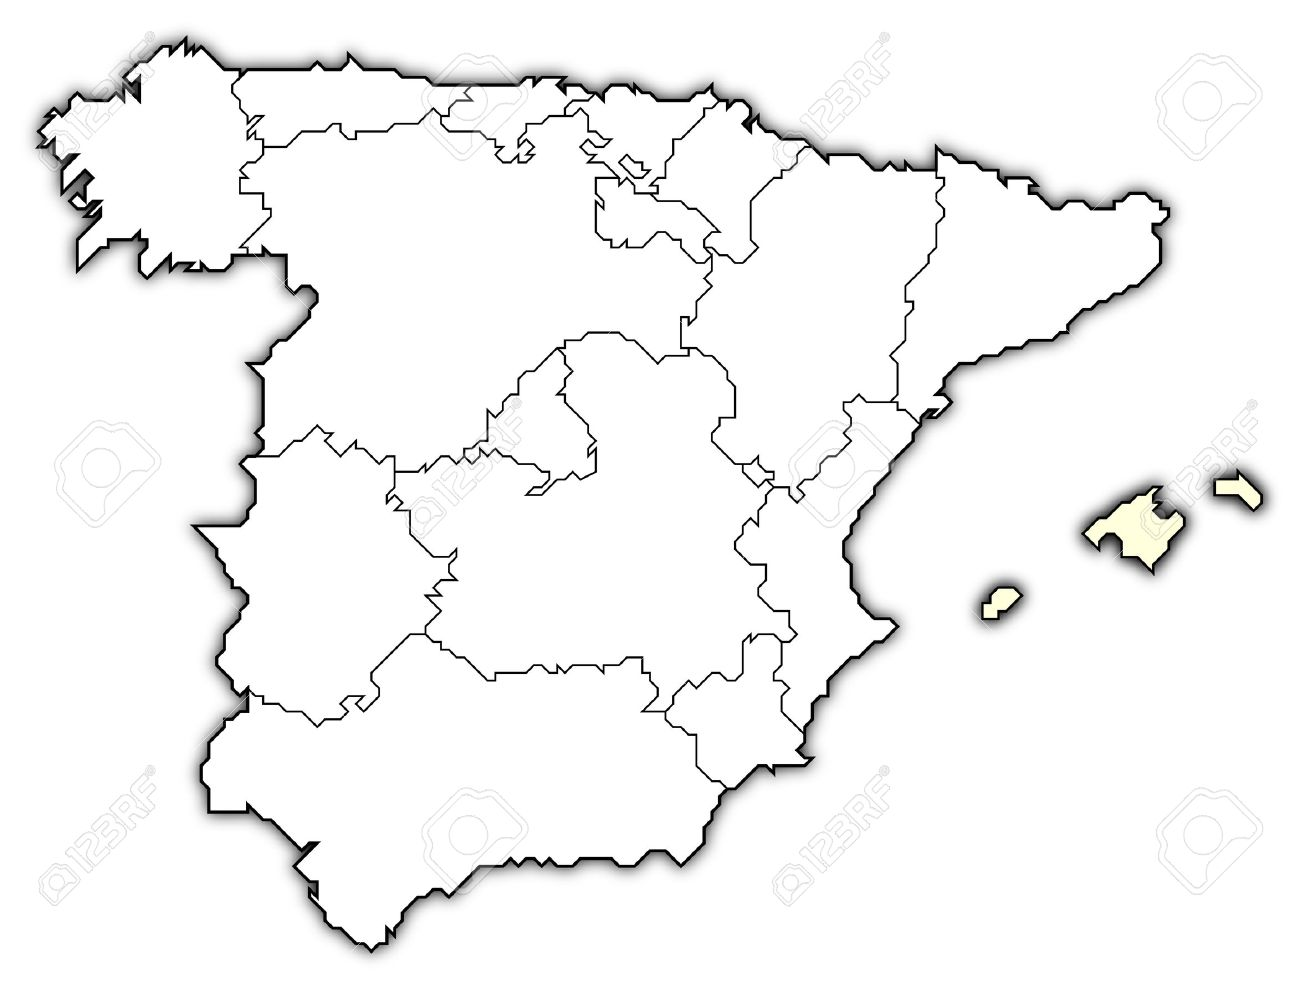 Map Of Spain Drawing.Political Map Of Spain With The Several Regions Where The Balearic